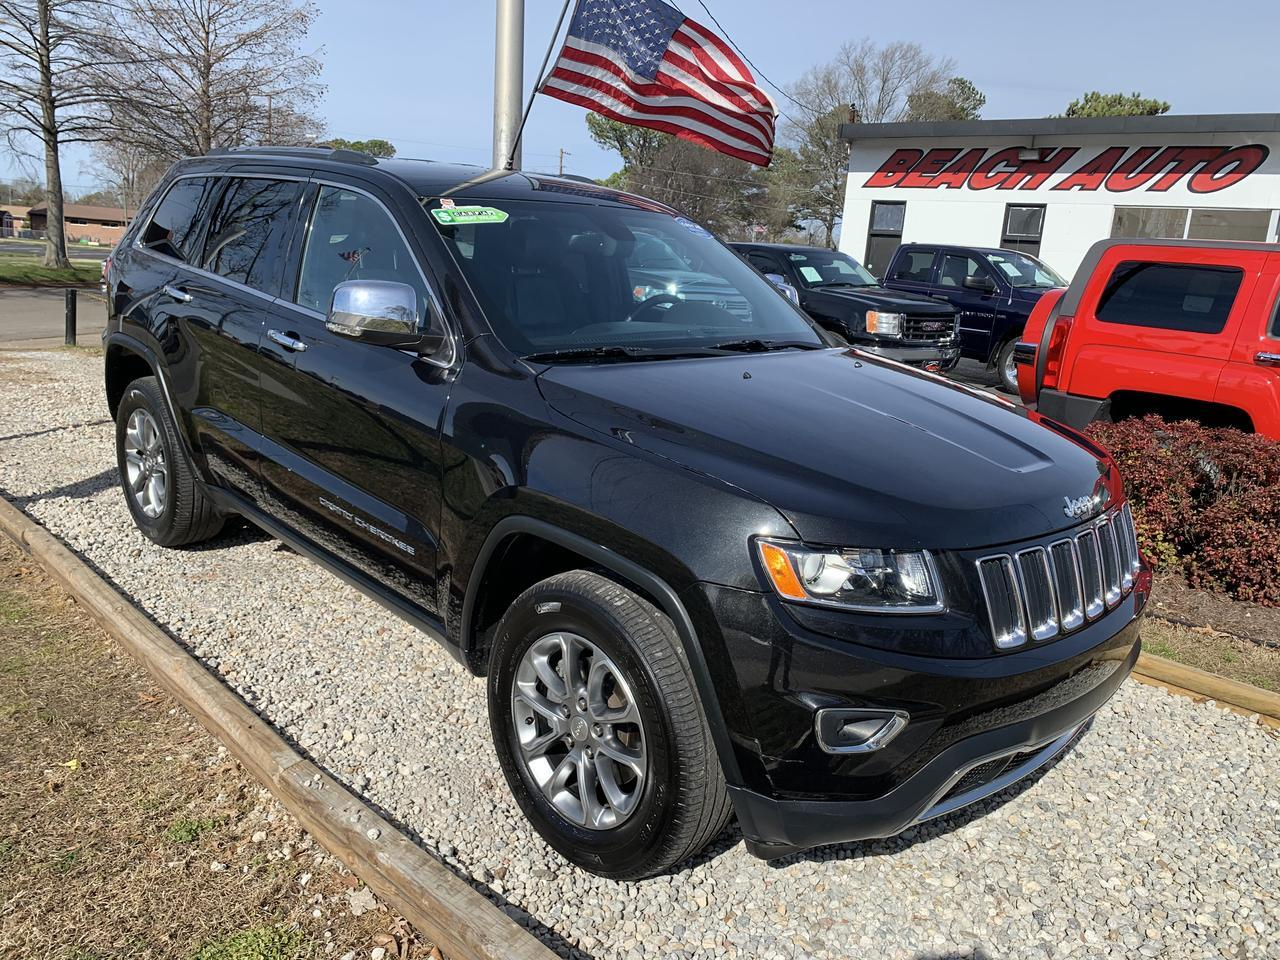 2014 JEEP GRAND CHEROKEE LIMITED 4X4, WARRANTY, LEATHER, NAV, HEATED SEATS, KEYLESS START, BLUETOOTH, REMOTE START! Norfolk VA